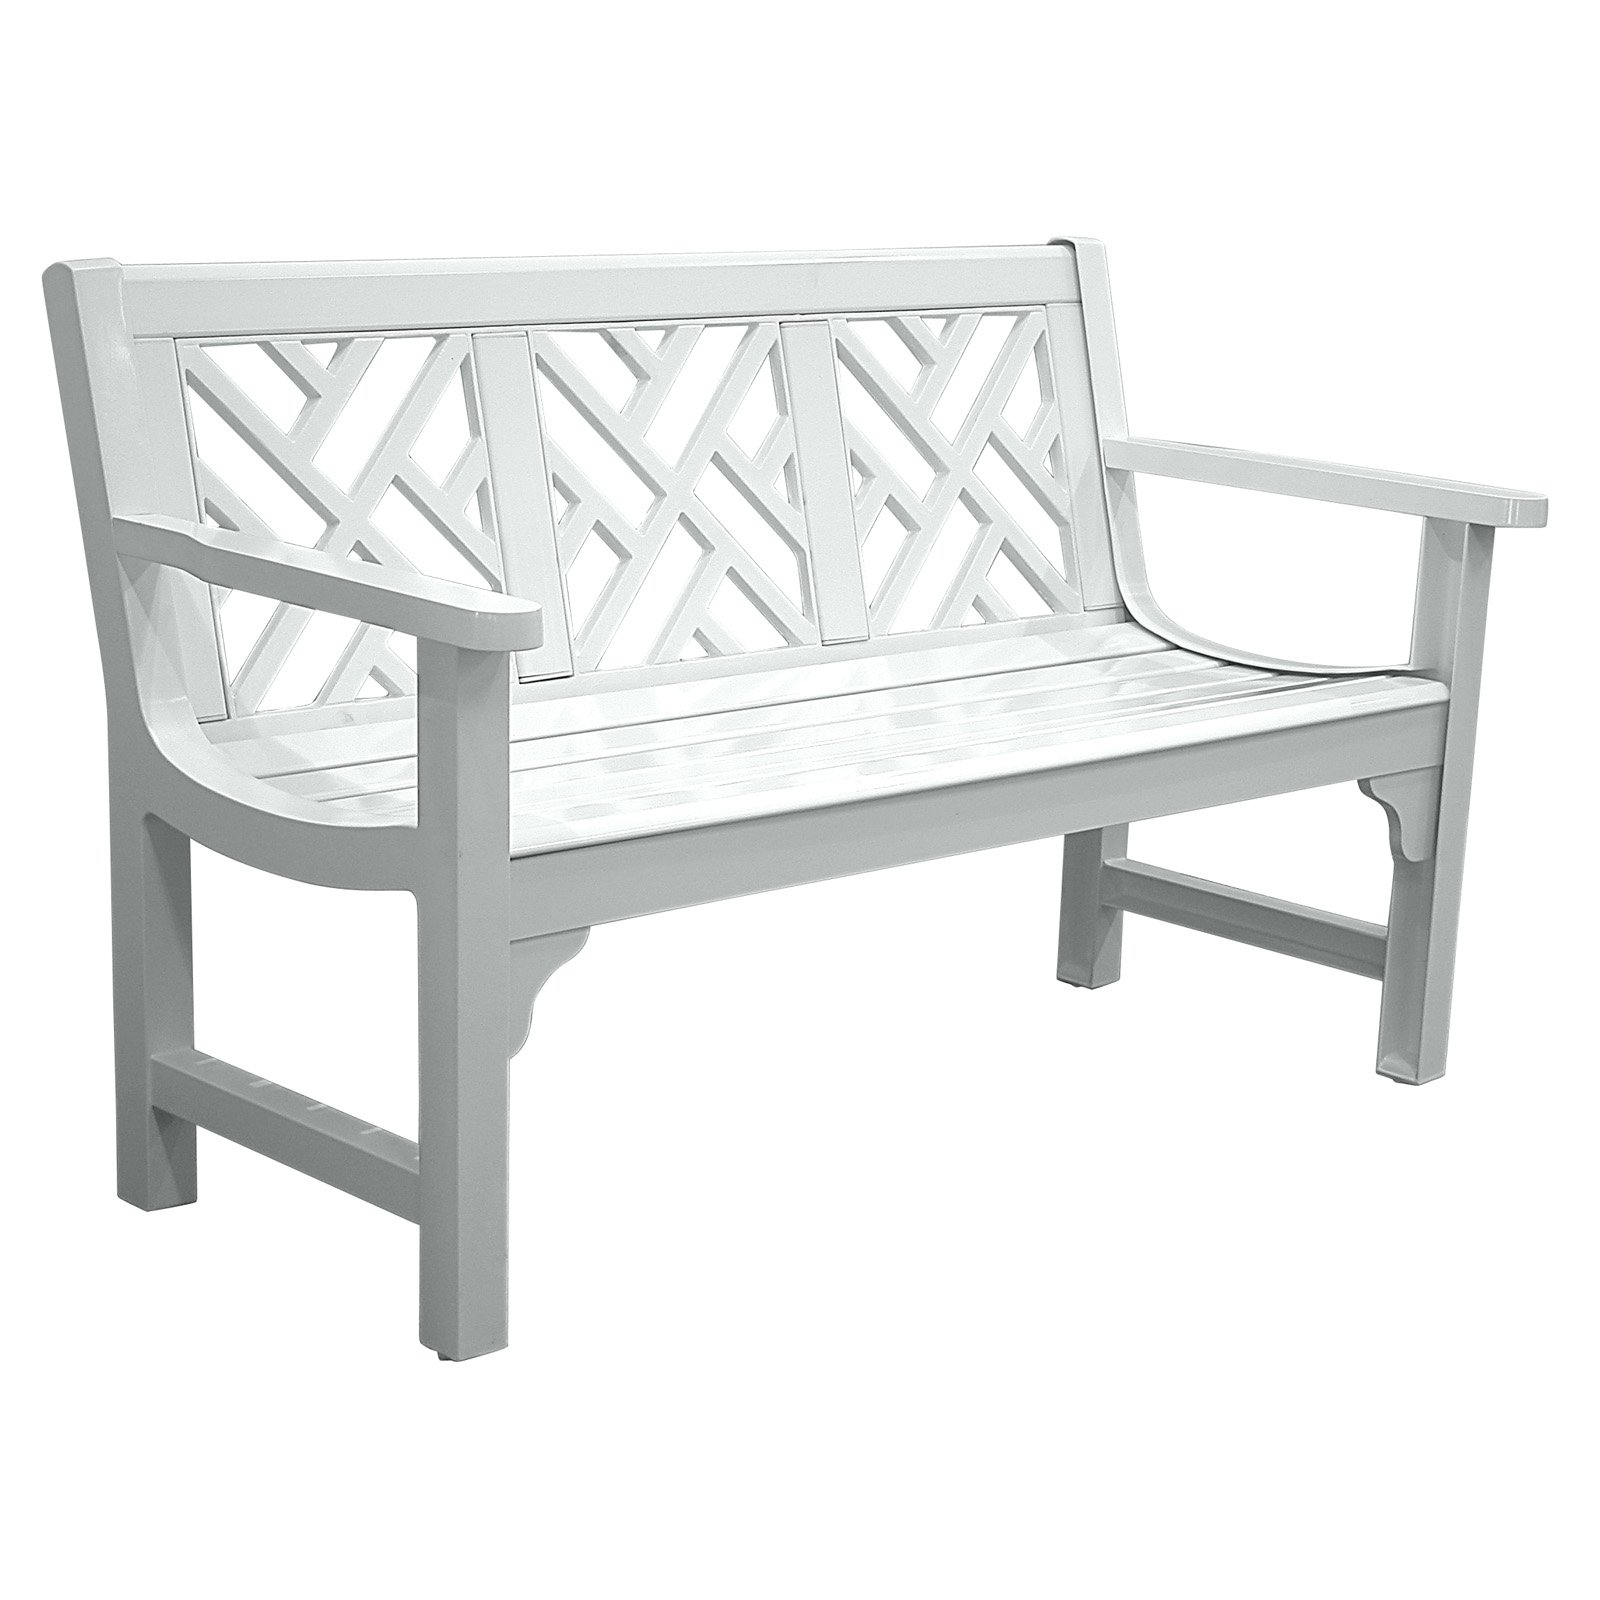 chair yard porch frame choice garden dp best furniture amazon bench white products seat com steel outdoor park patio